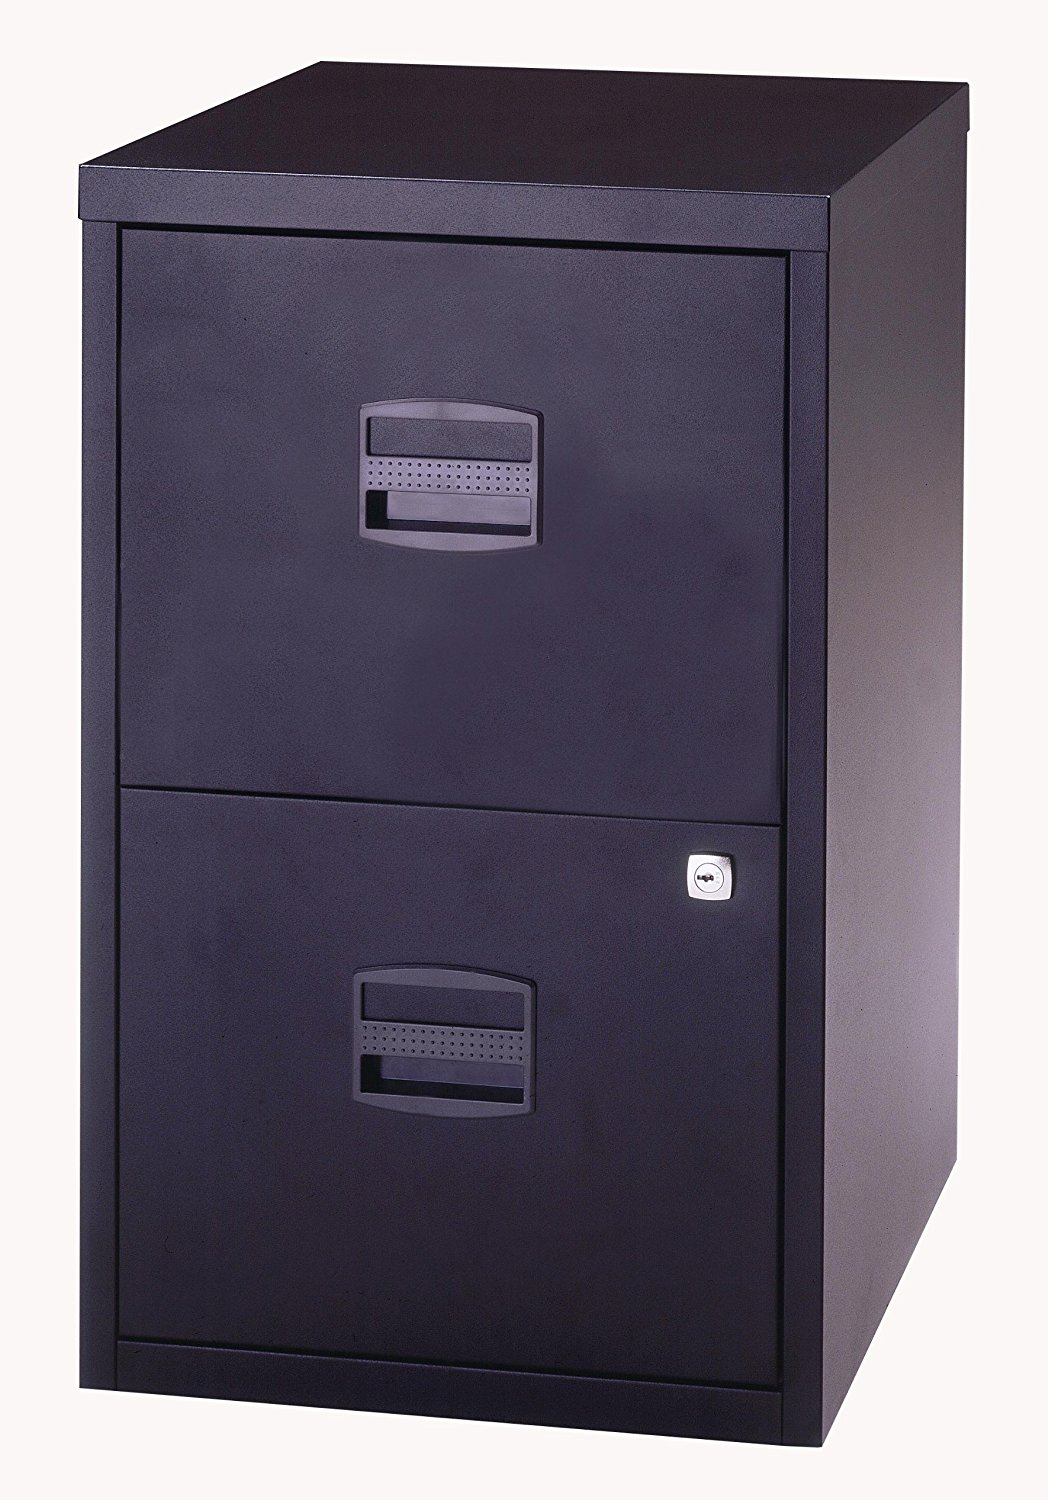 Side Filer Filing Cabinets | White Filing Cabinet 2 Drawer | Bisley File Cabinet